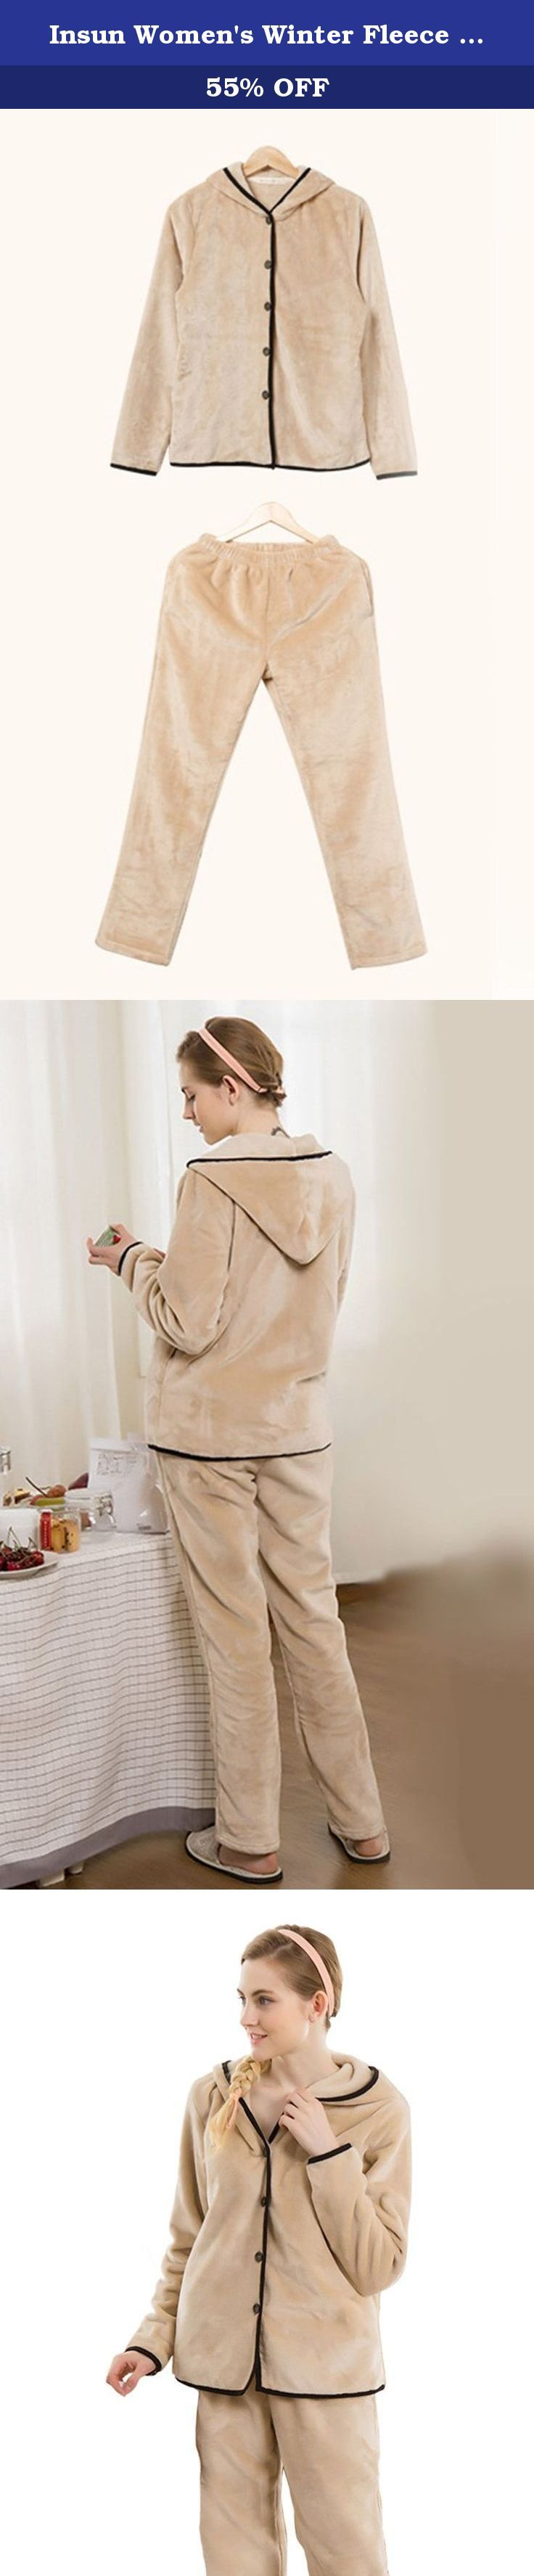 Insun Women's Winter Fleece Sleepwear Set Hoodie Flannel Pajamas Camel. Sweety hoodie fleece sleepwear set featuring button closure solid color thick pajamas,warm and soft in cold weather.